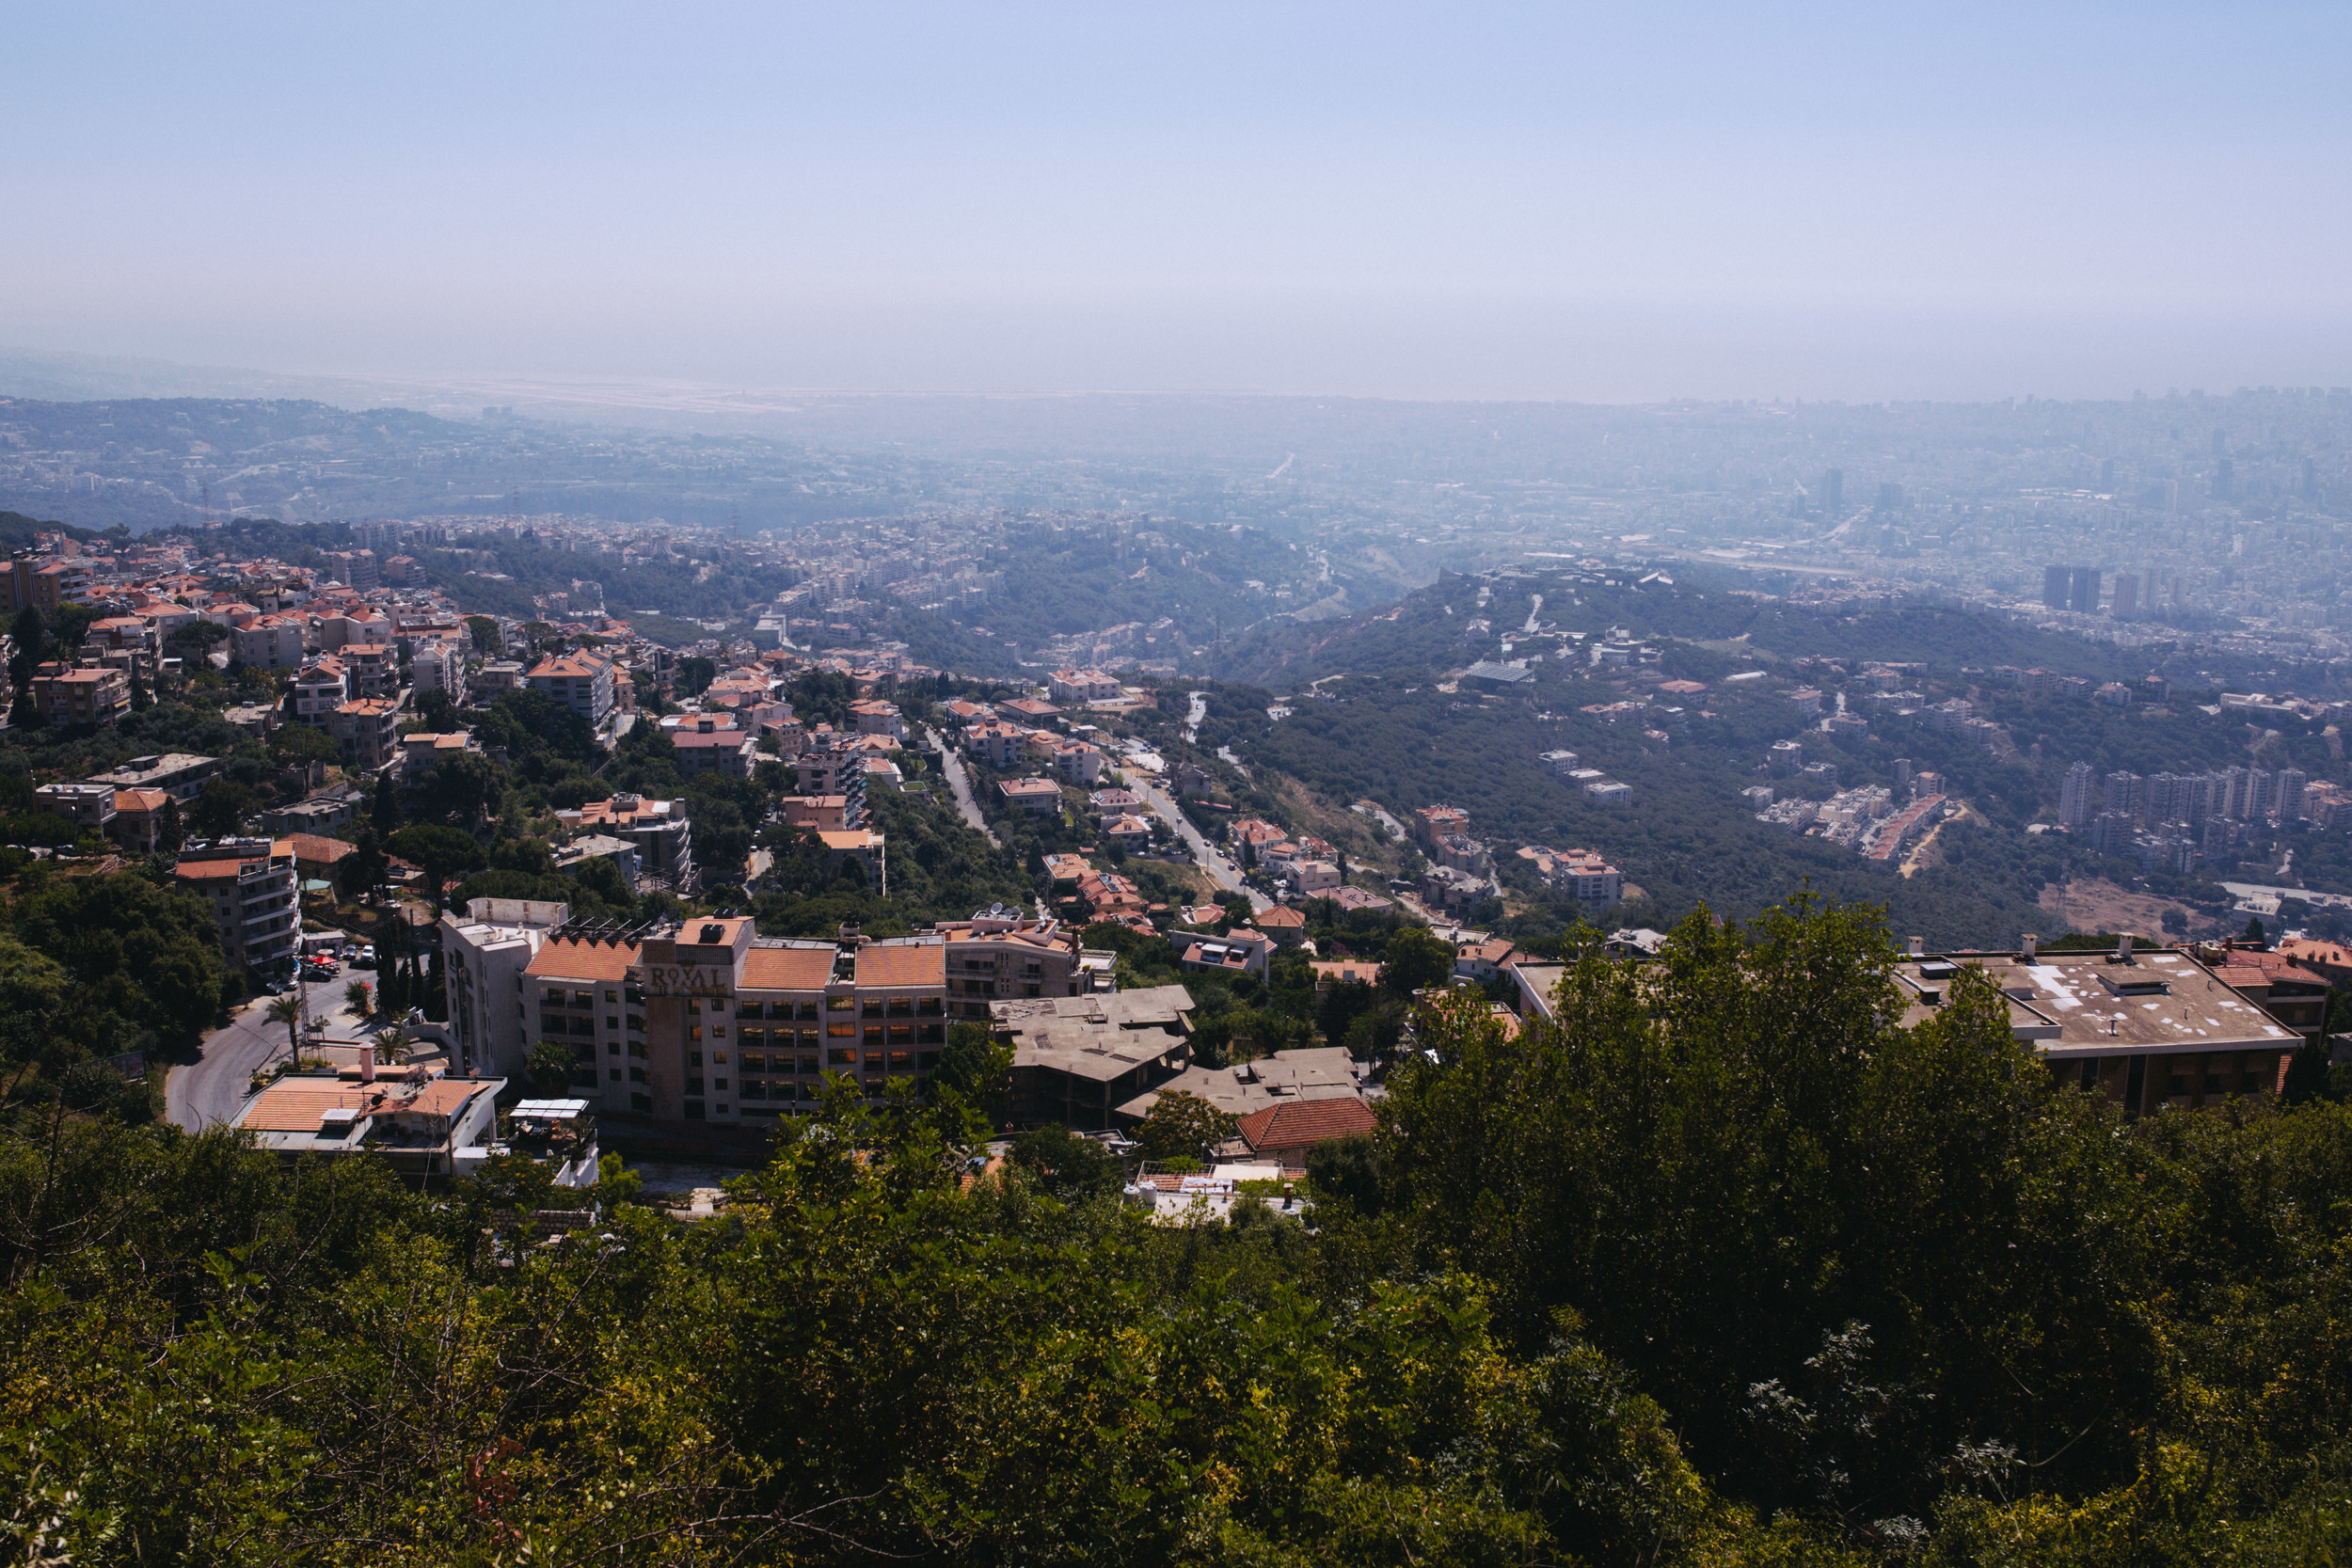 The view from the hills above Beirut.